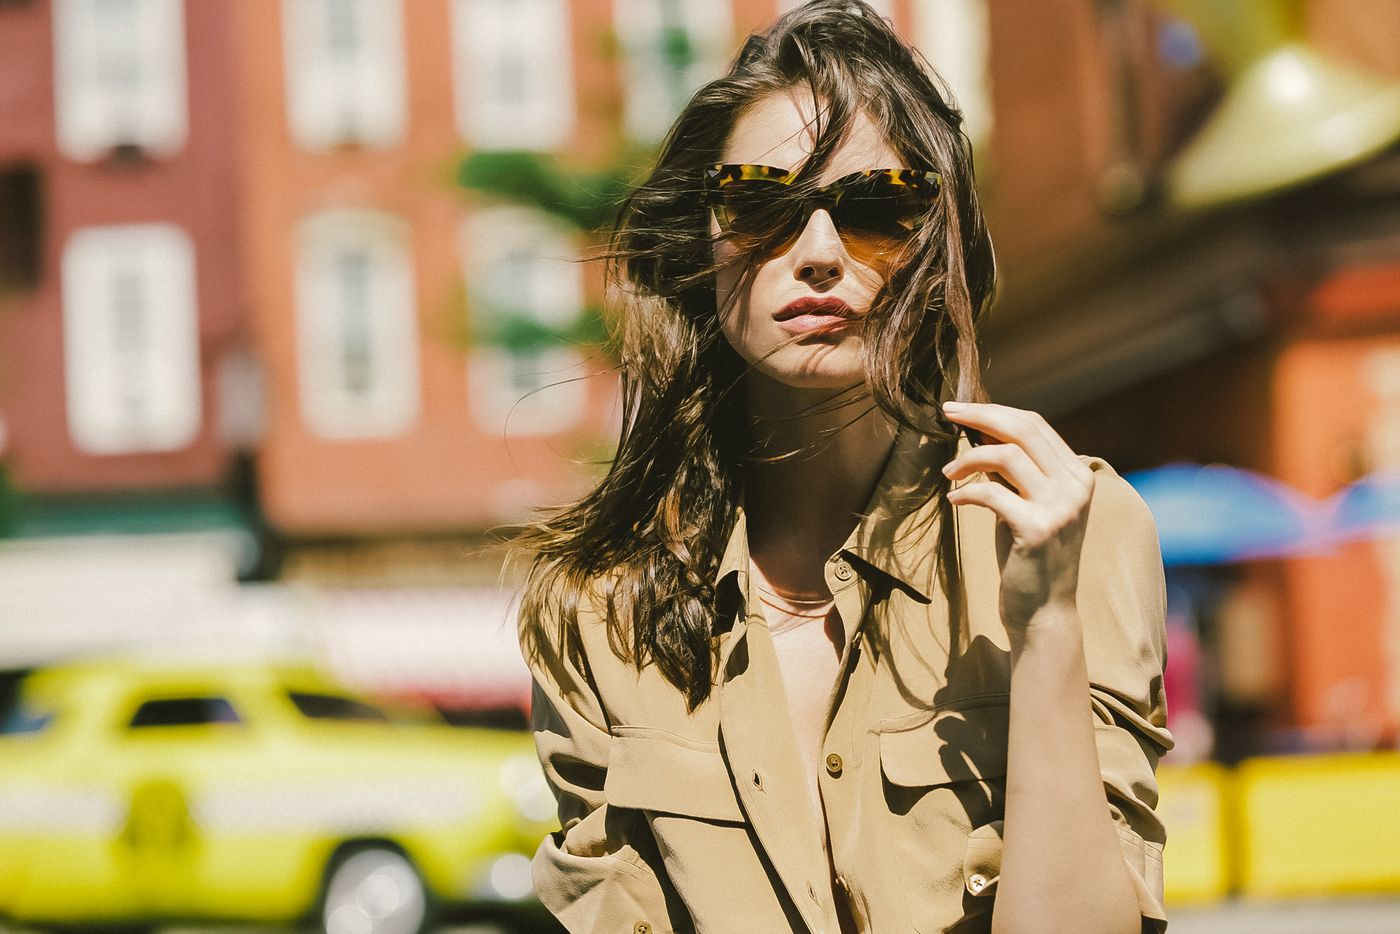 A woman in sunglasses and a tan blouse.